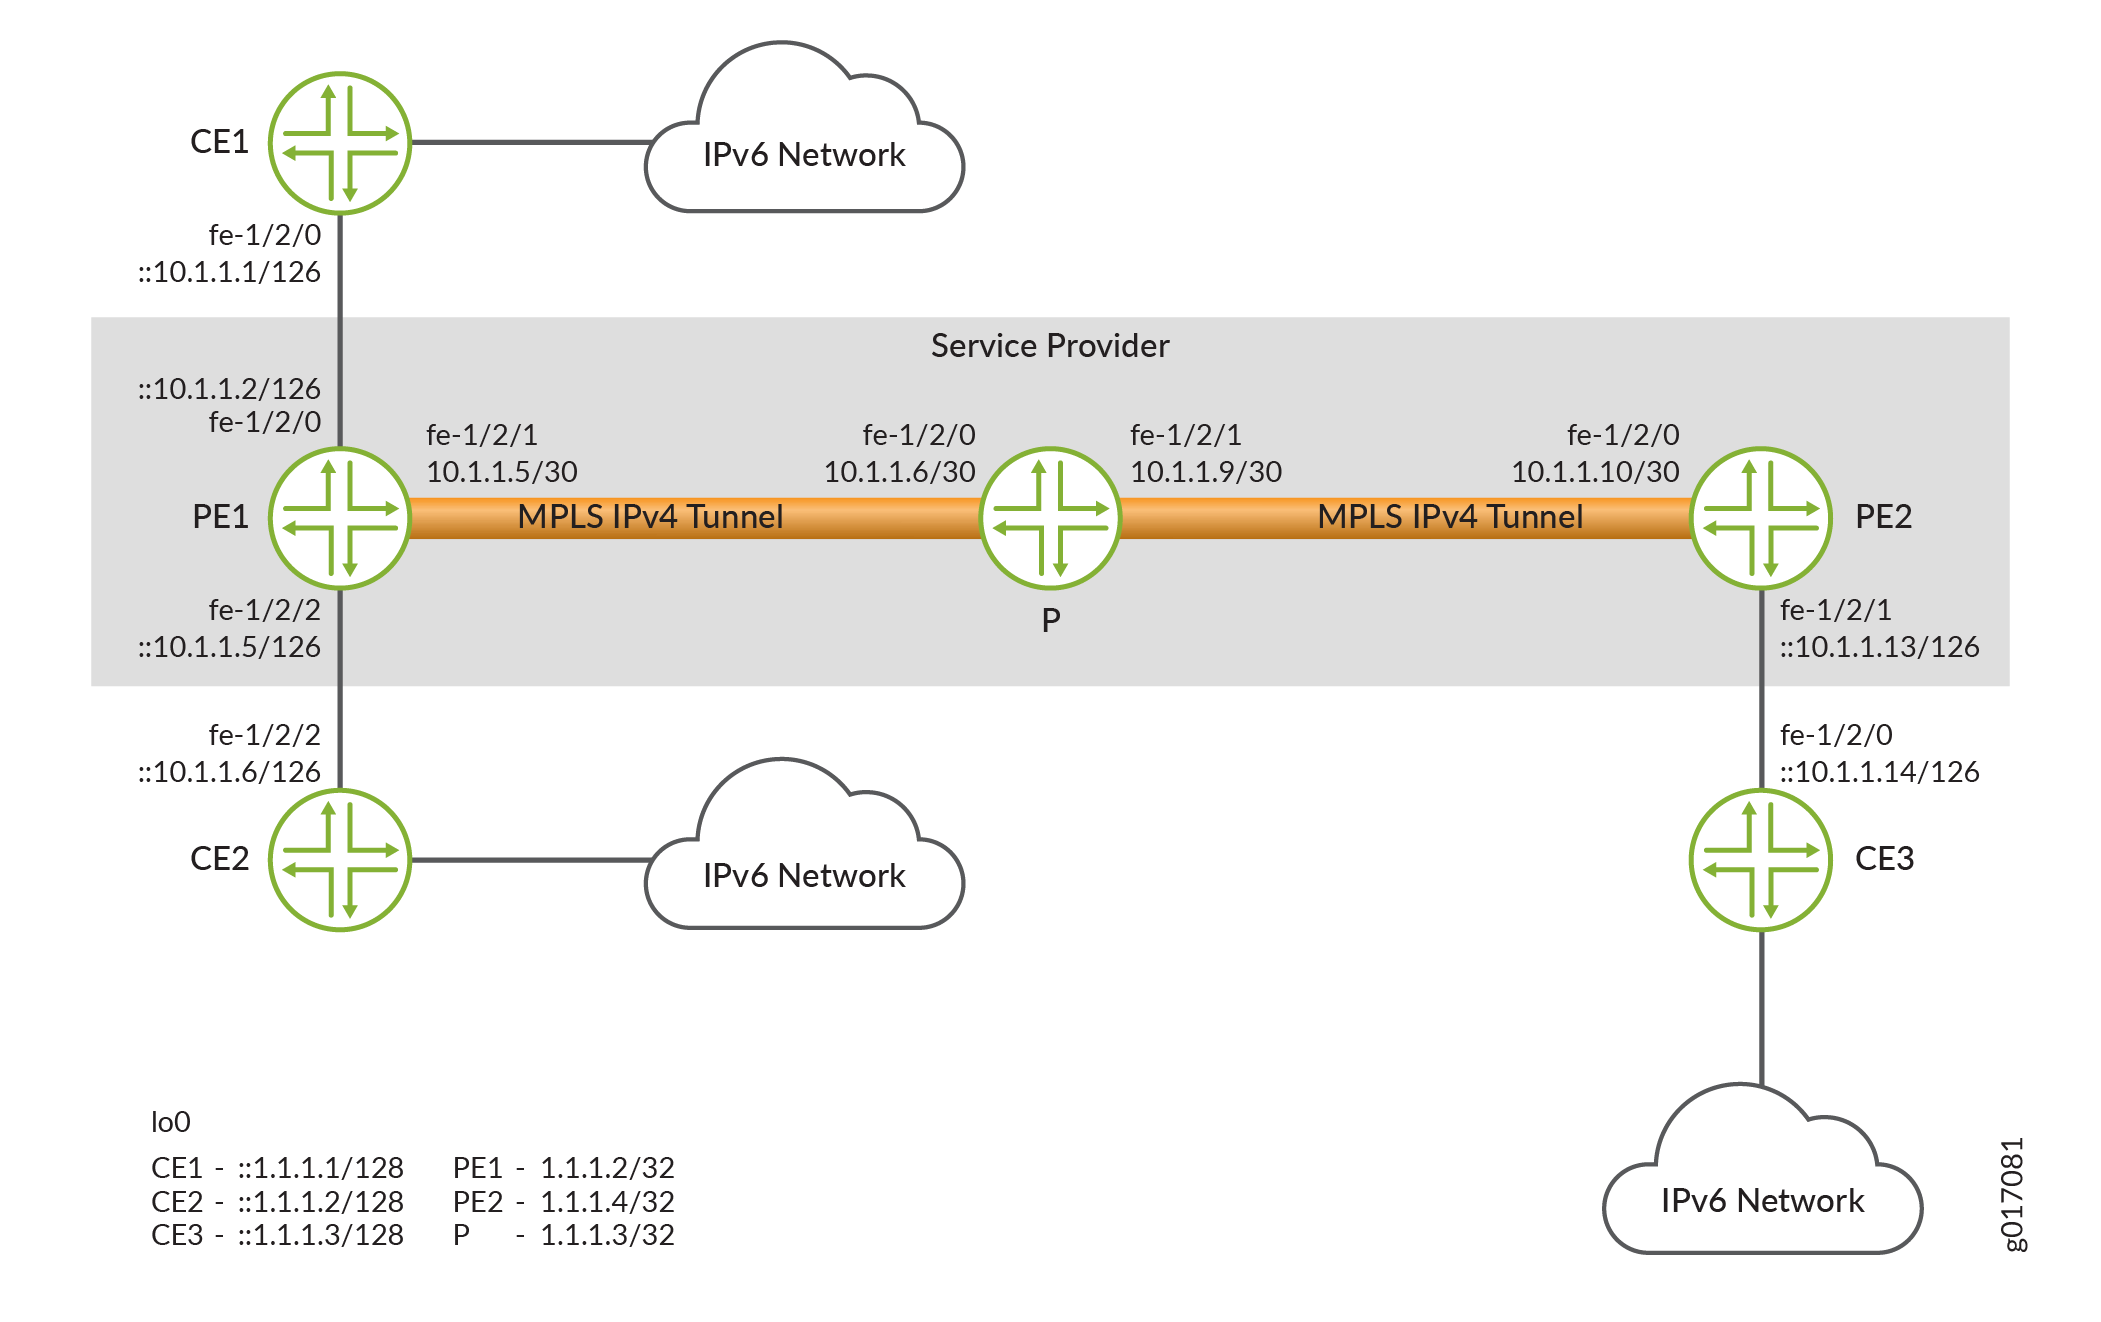 IPv6 Networks Linked by MPLS IPv4 Tunnels